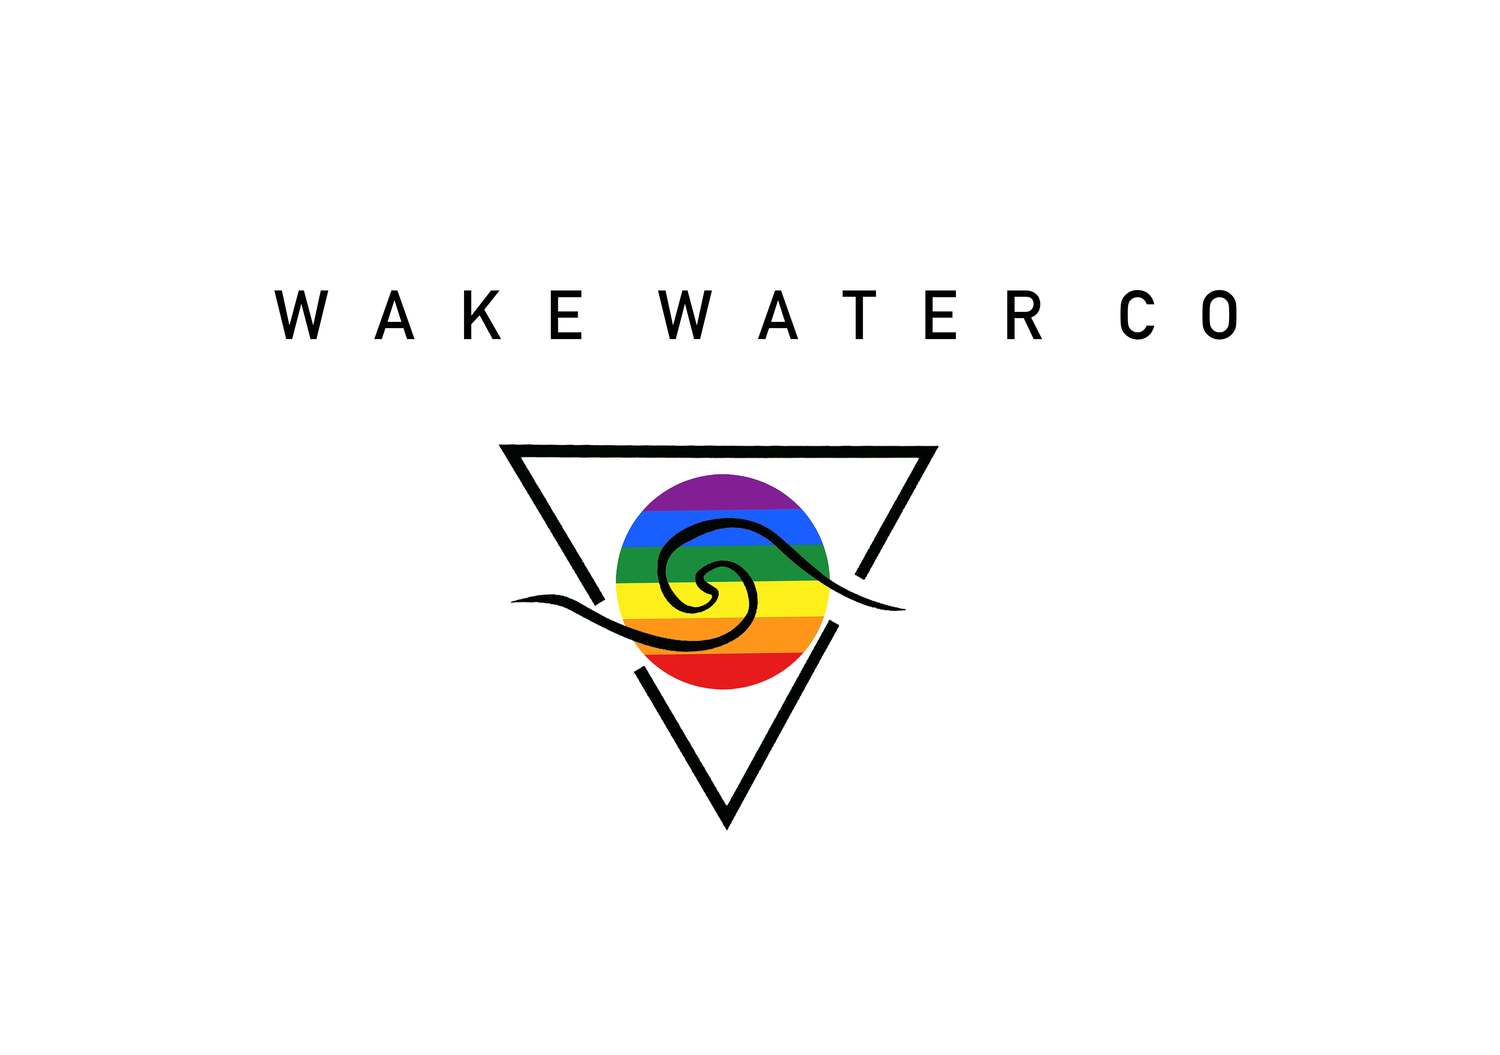 Wake Water CO